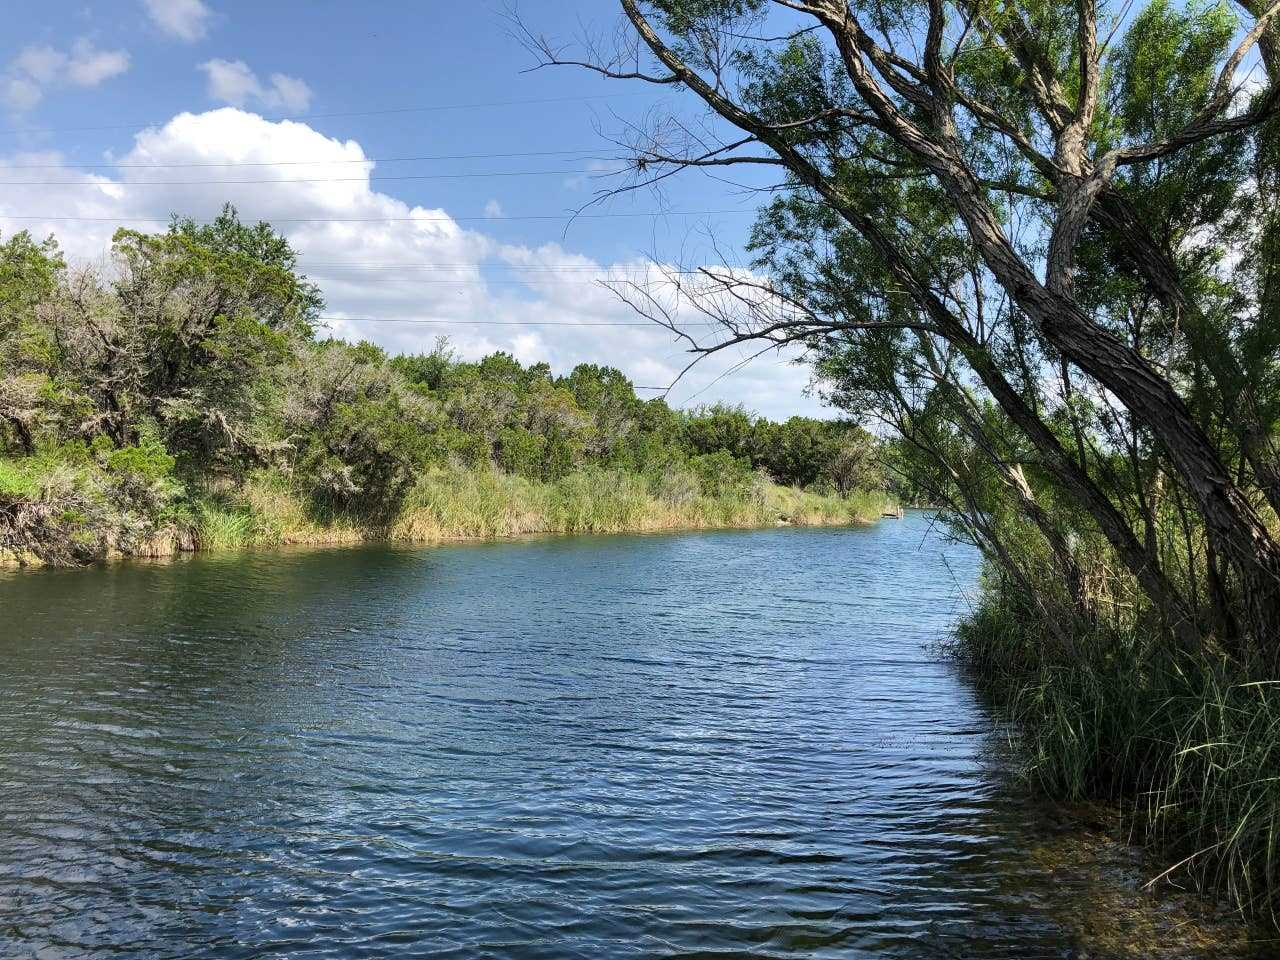 Check ahead with us about the water levels in the seasonal creek on the property. When the water's up, it's an amazing place to swim and practice catch-and-release fishing!